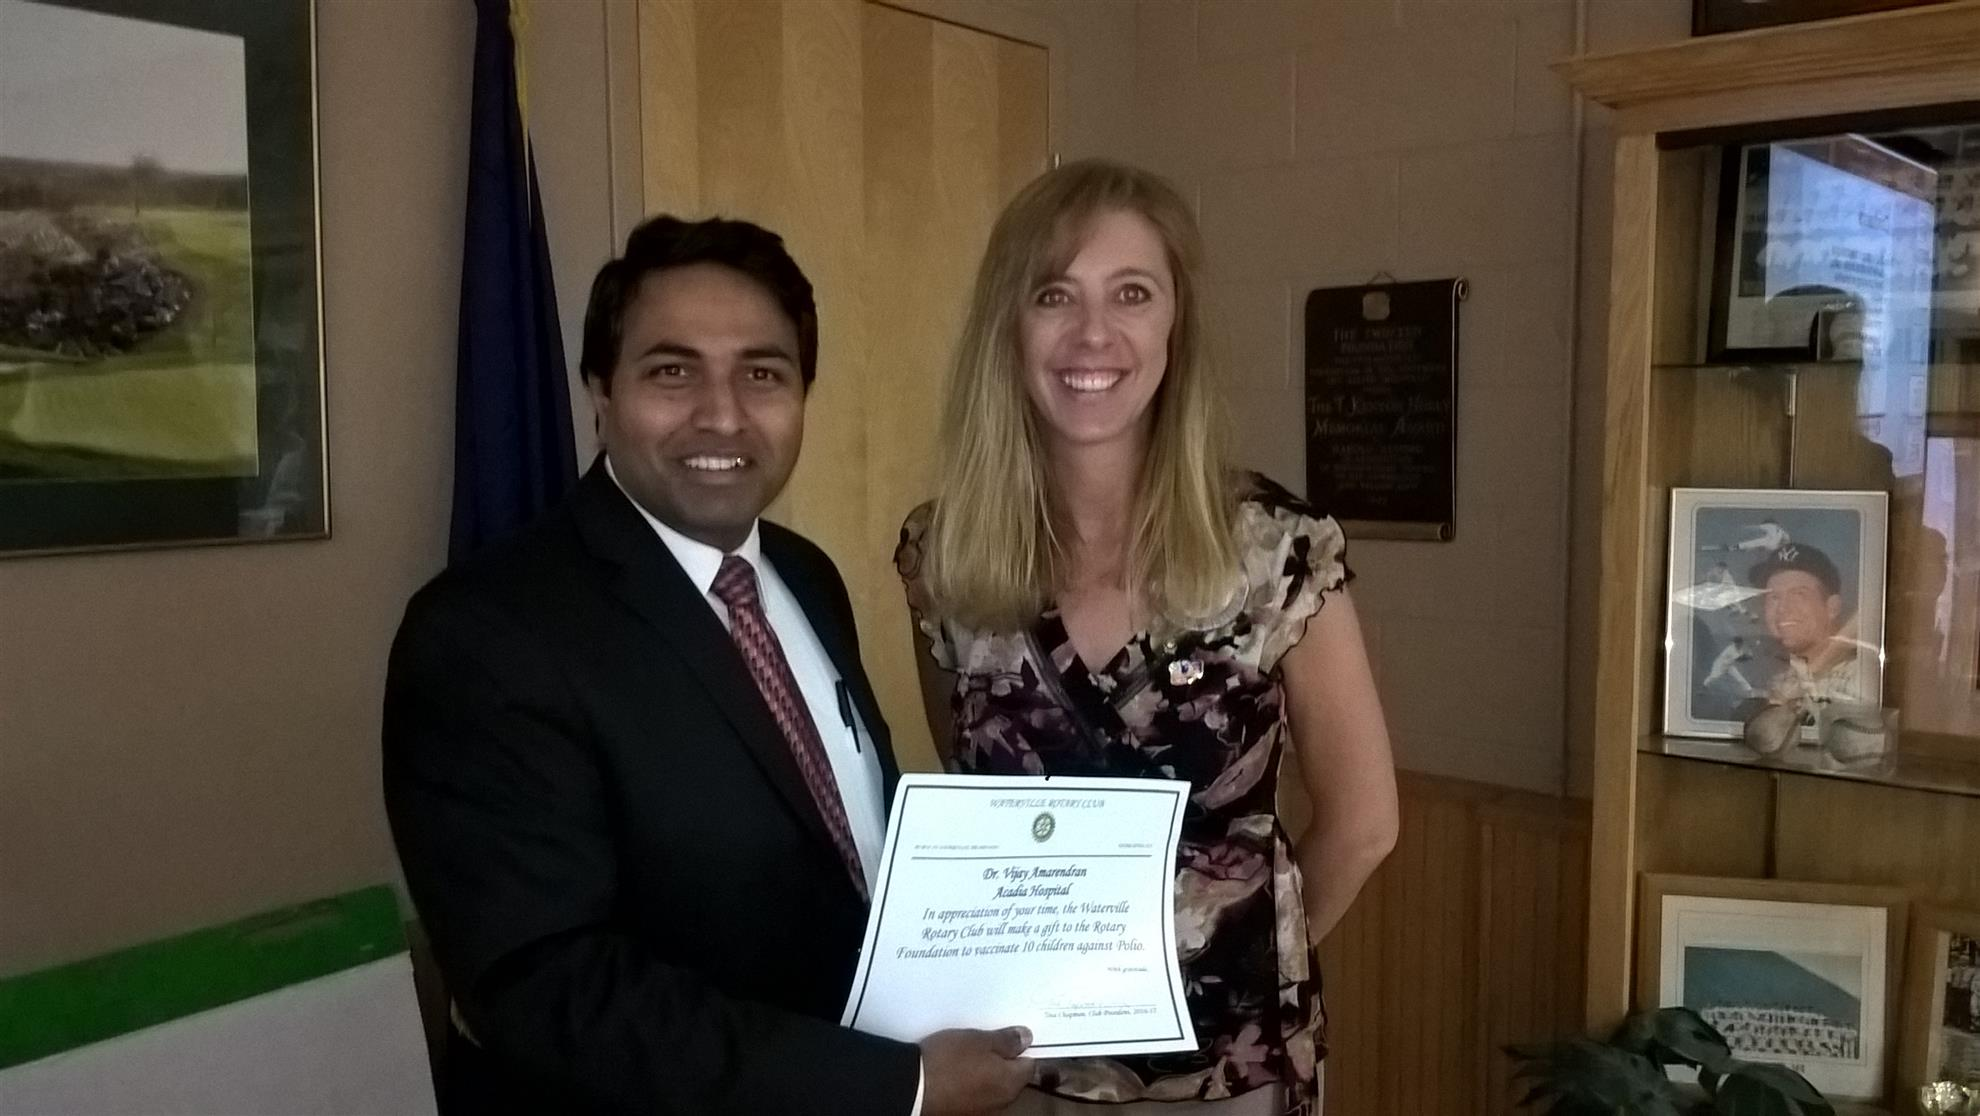 Dr. Amarendran receiving thank you from Waterville Rotary Club President Tina Chapman.